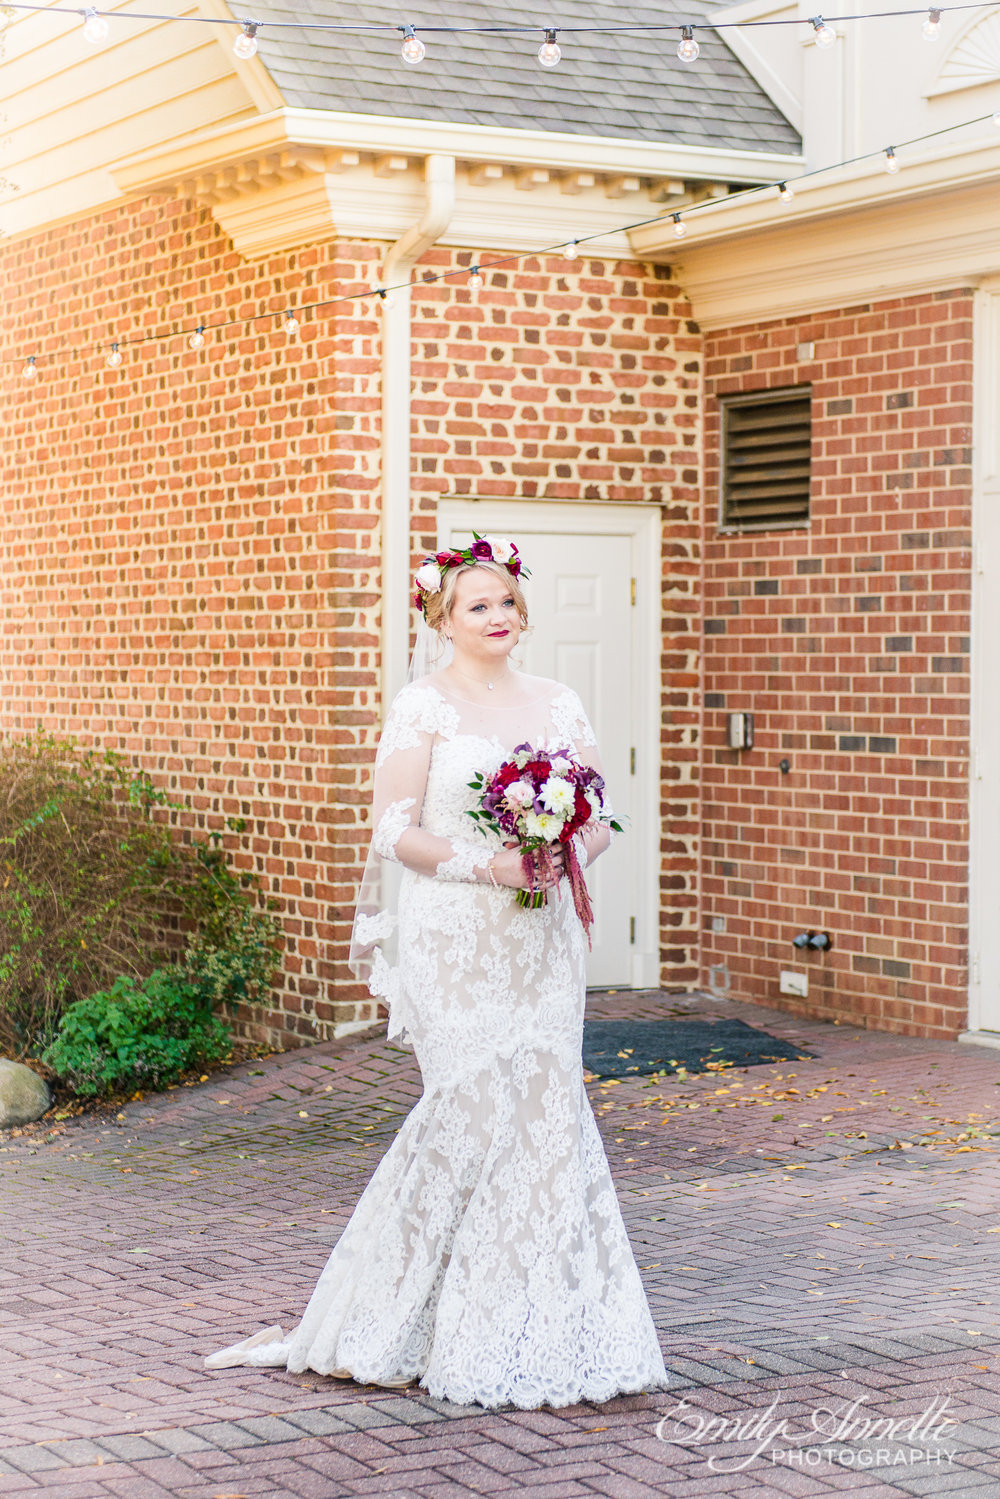 A bride in a lace wedding dress with sleeves walking into the wedding ceremony at Willow Oaks Country Club in Richmond, Virginia